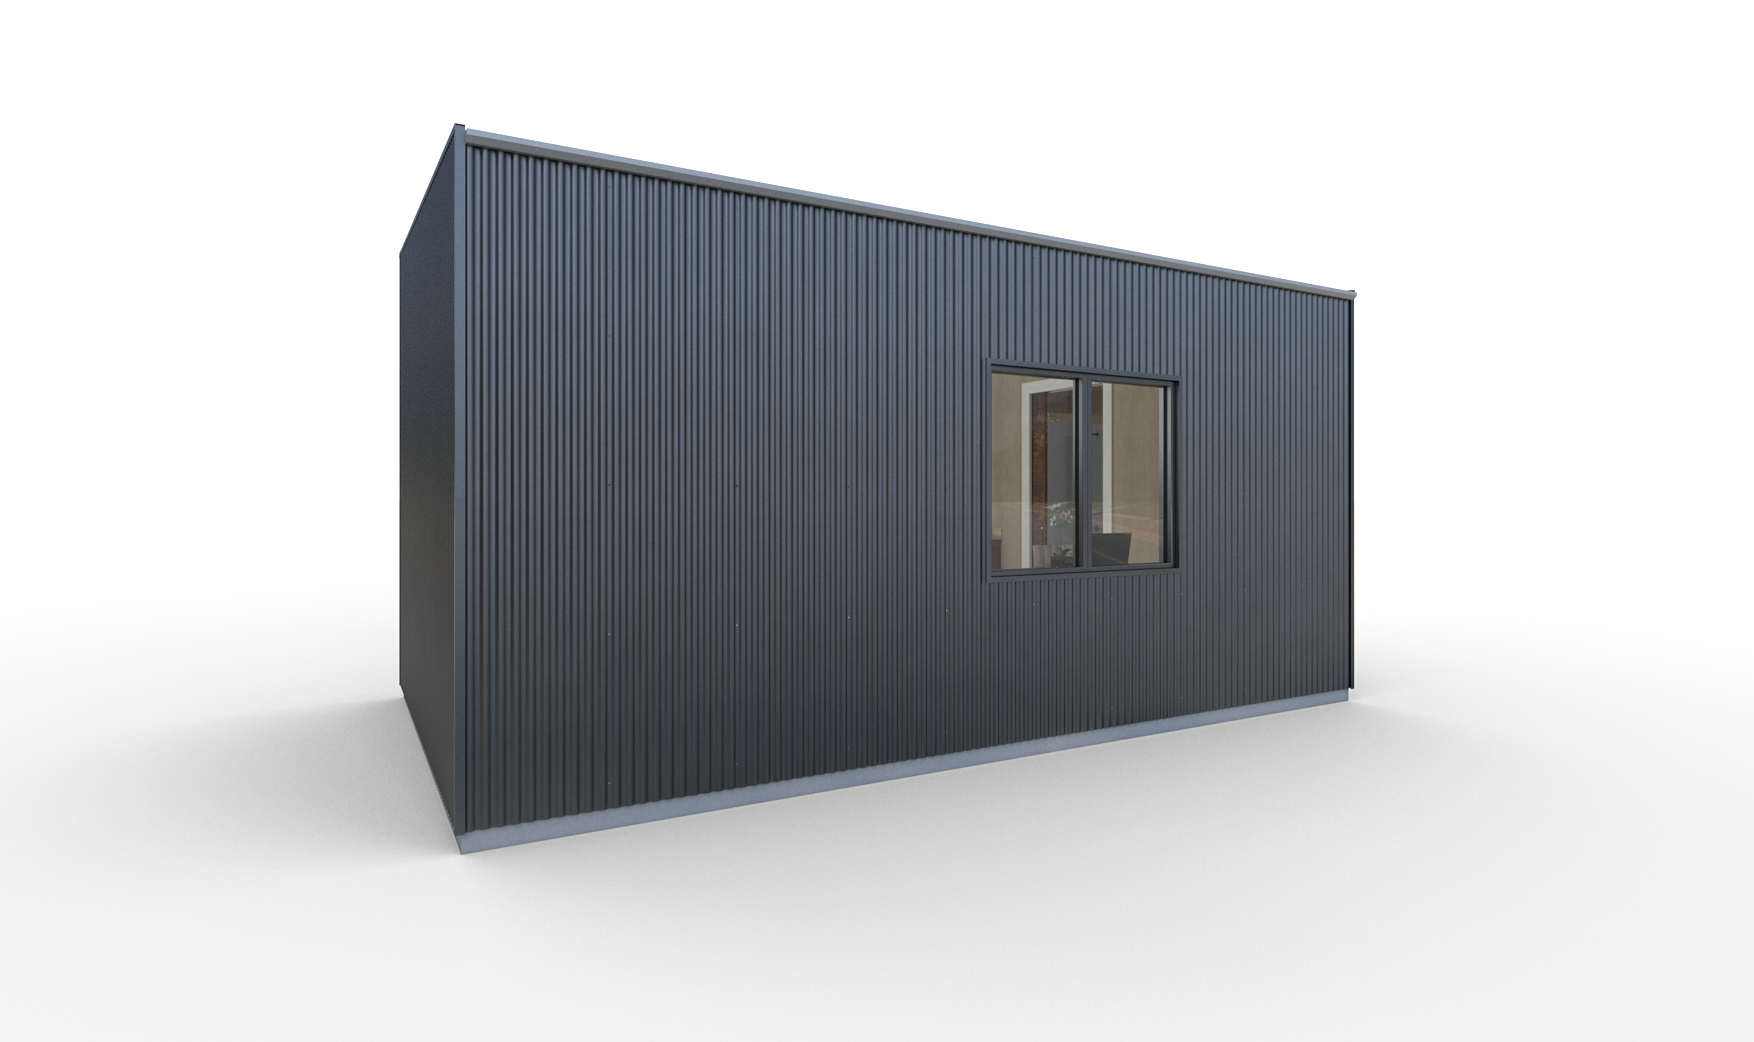 The sides and back are clad in charcoal steel panels. Or continue the cypress siding as an optional upgrade.